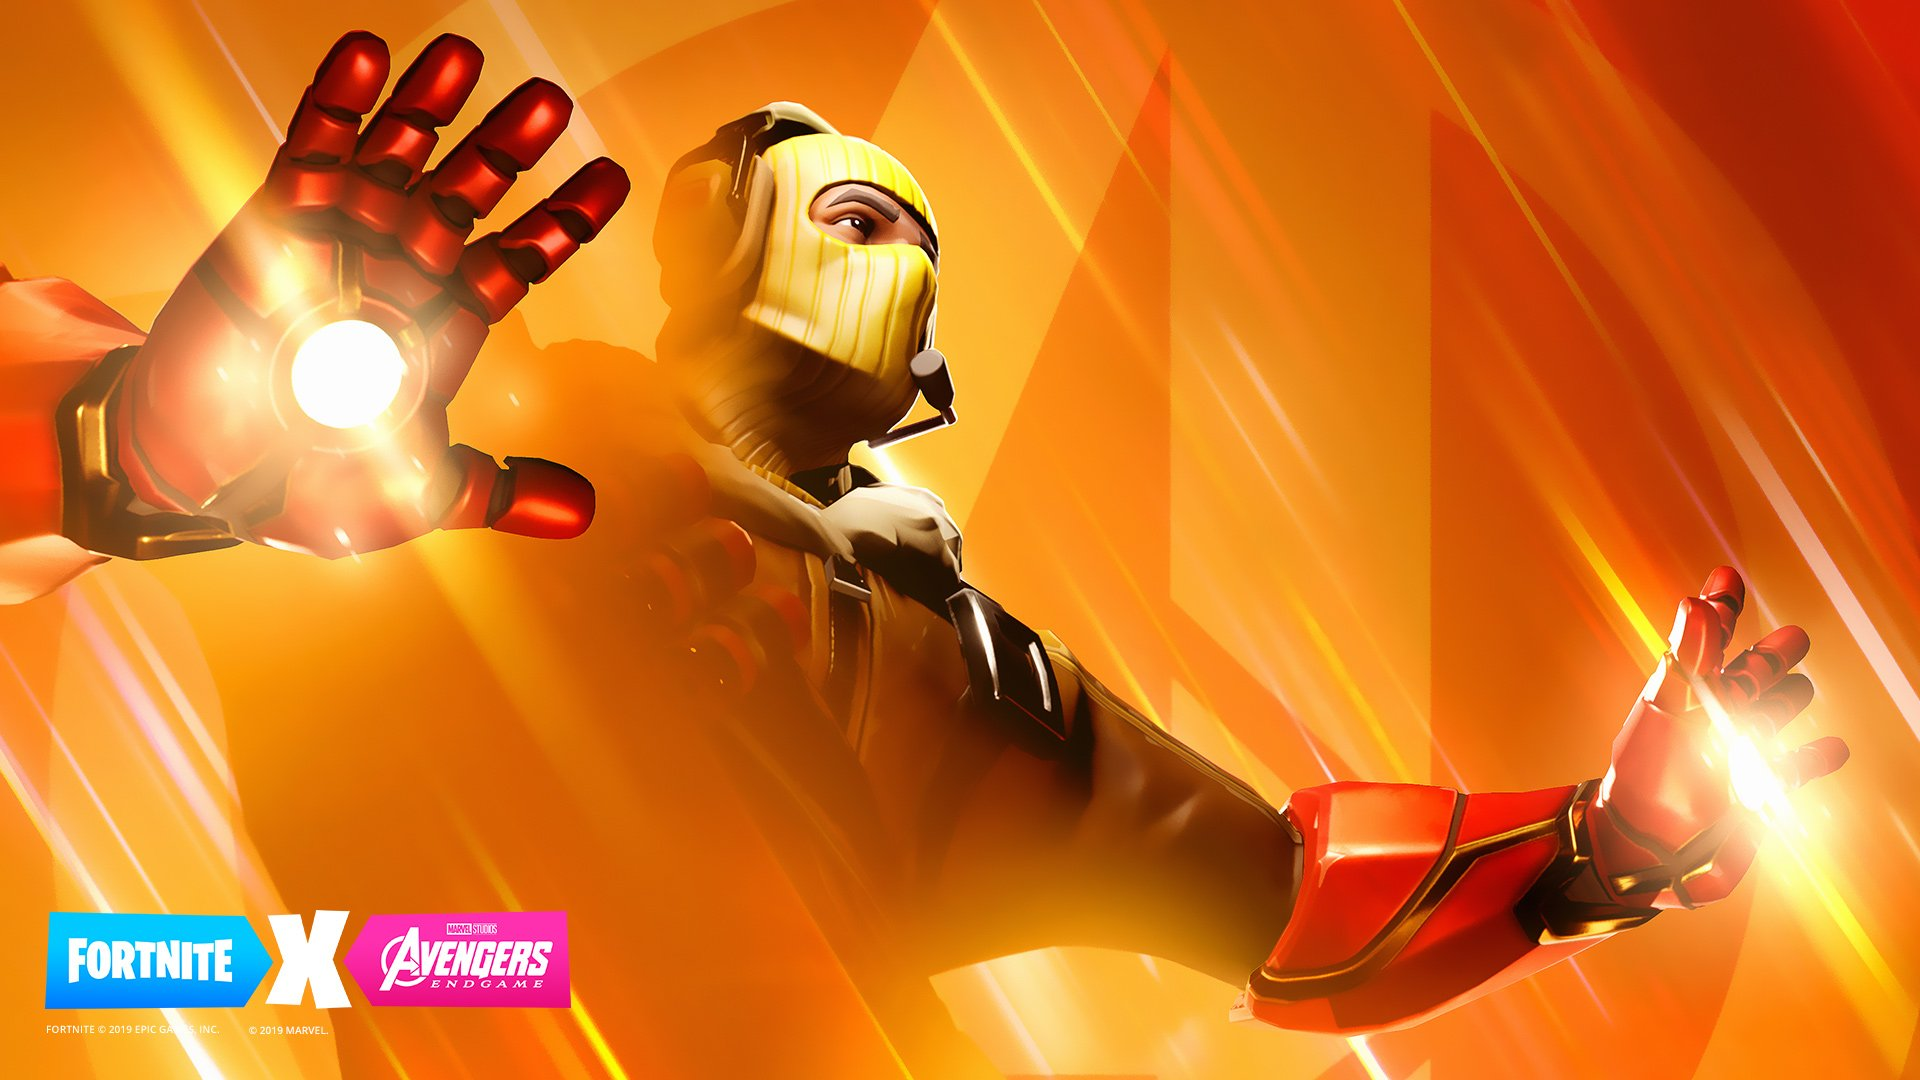 Photo of Fortnite 8.50 patch notes published, Fortnite X Avengers Endgame LTM is here